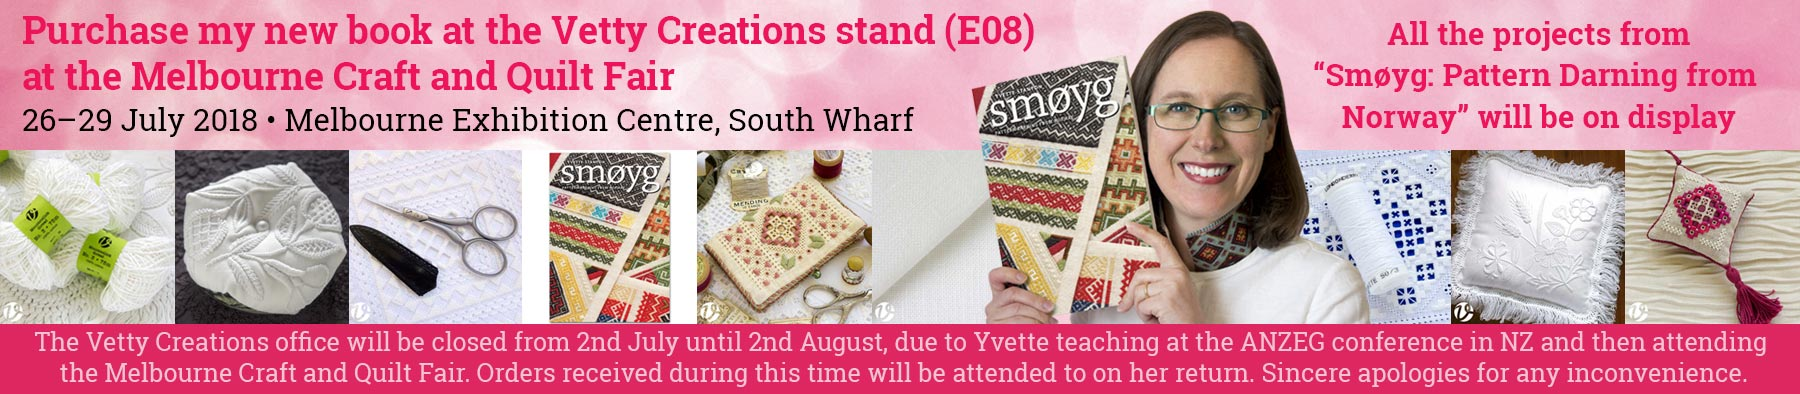 Vetty Creations will be at the Melbourne Craft and Quilt Fair